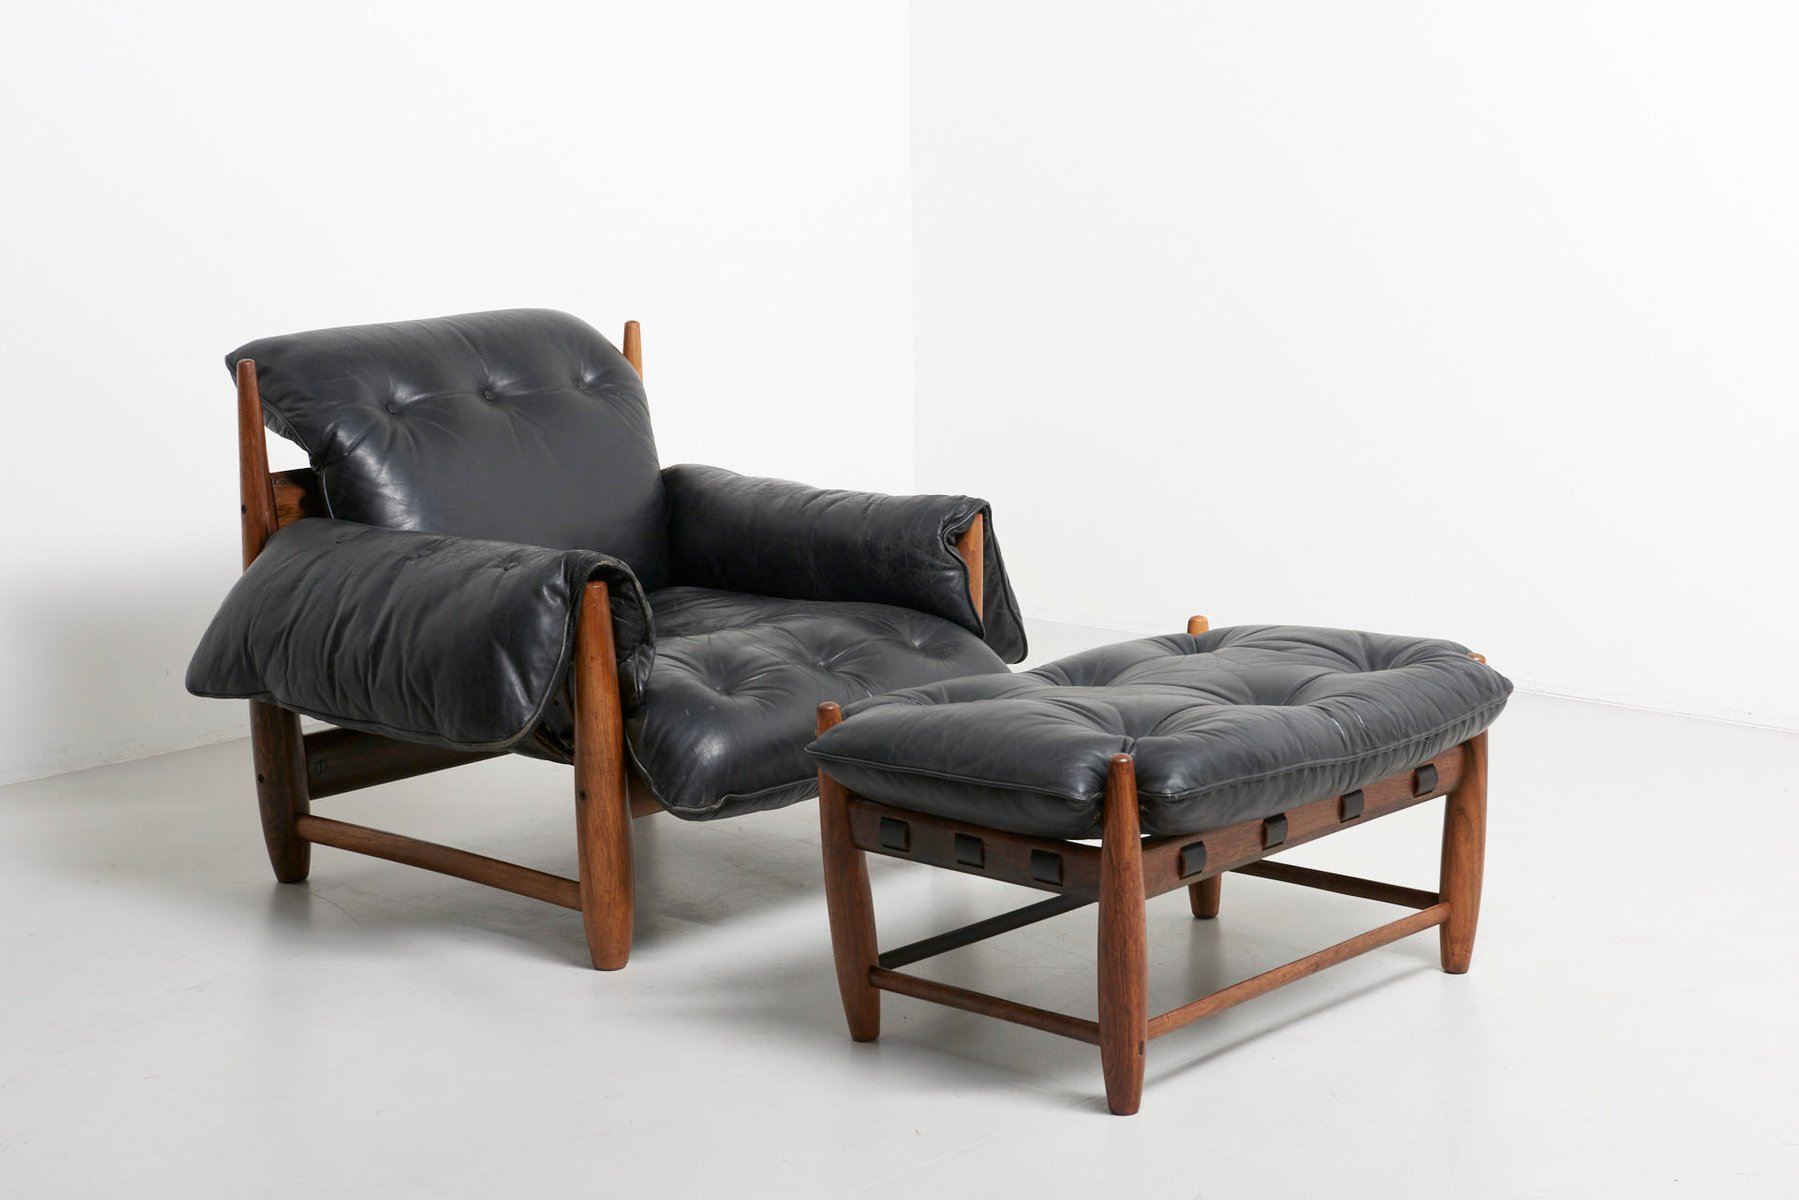 Attrayant Poltrona Mole Chair With Ottoman By Sergio Rodrigues, 1950s